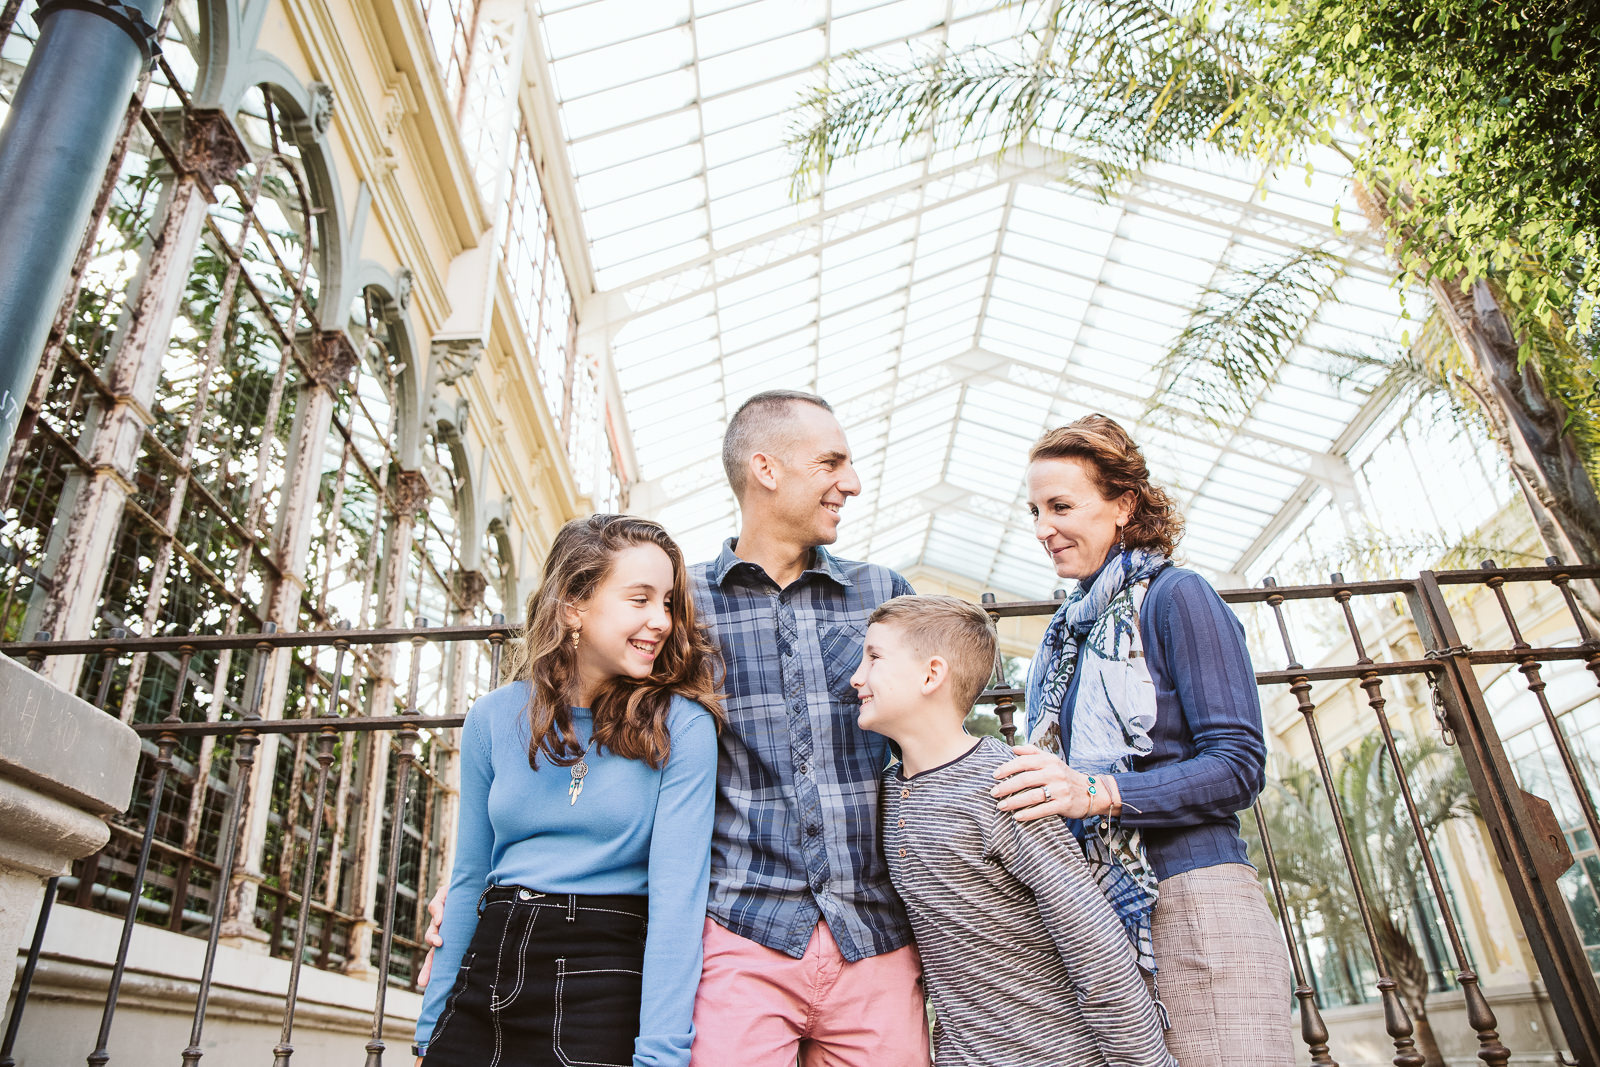 Family photo shoot in Barcelona | Natalia Wisniewska Photography